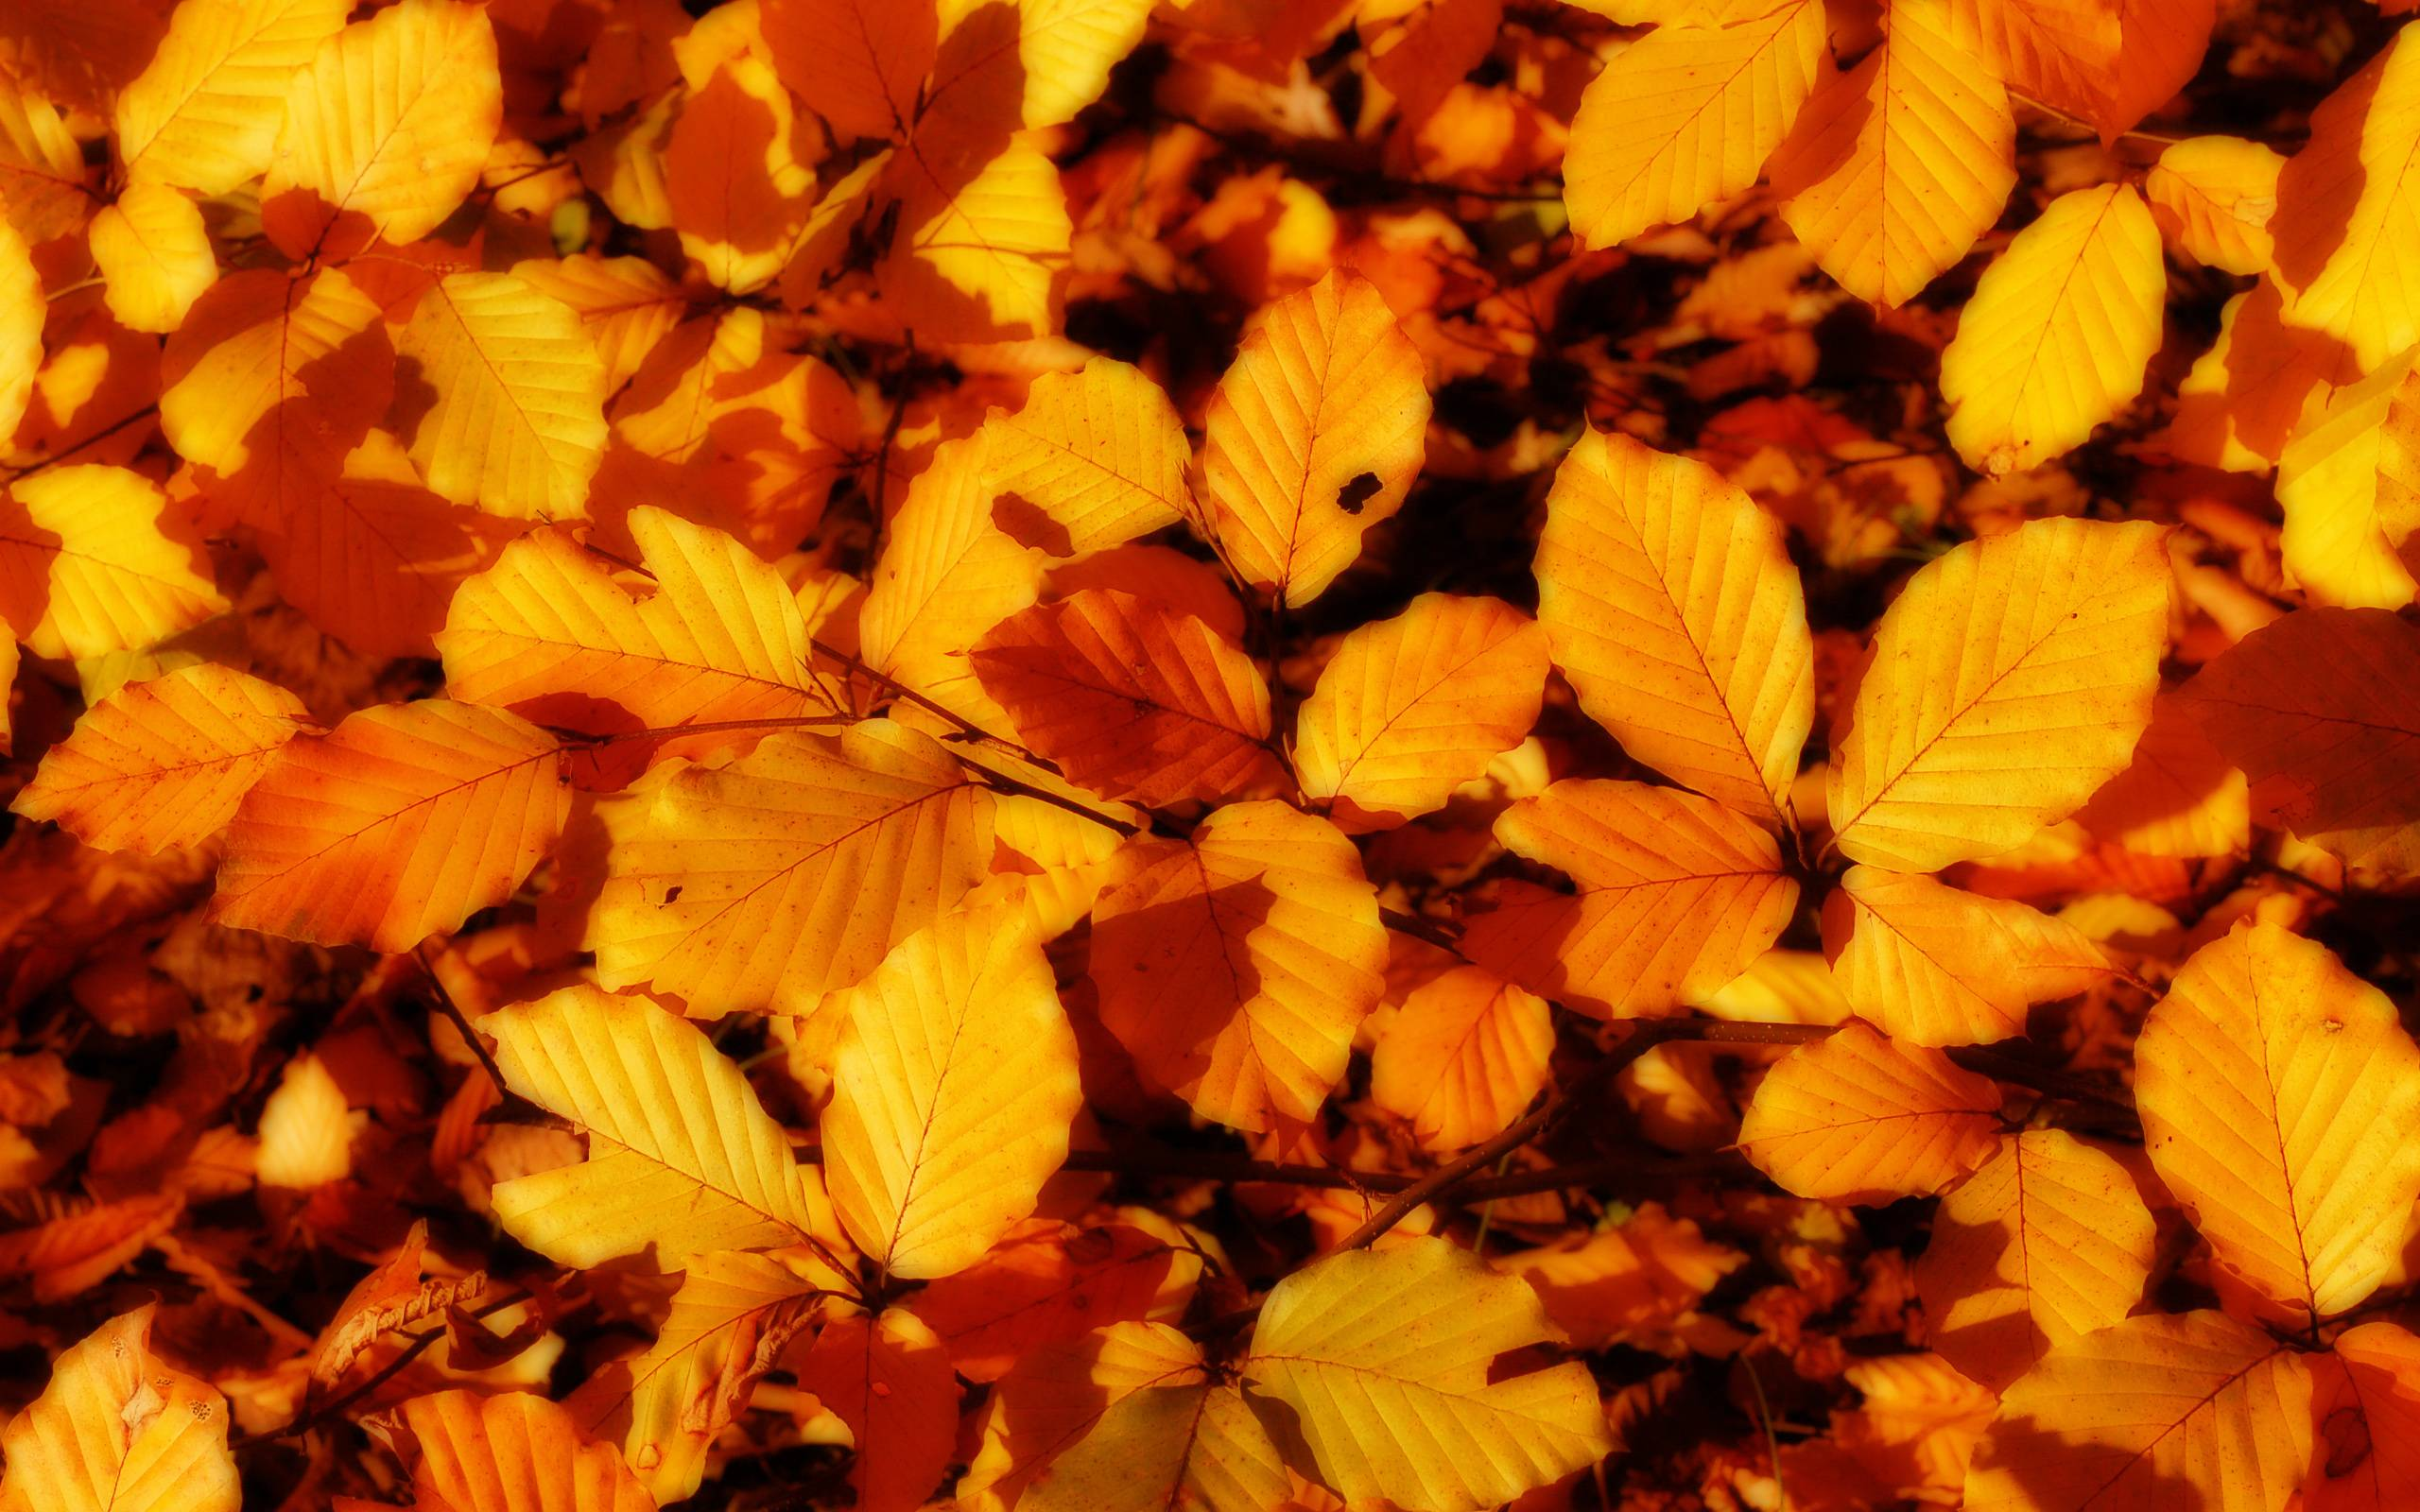 Autumn Leaves Wallpapers Autumn Fall Leaves Hd 1902505